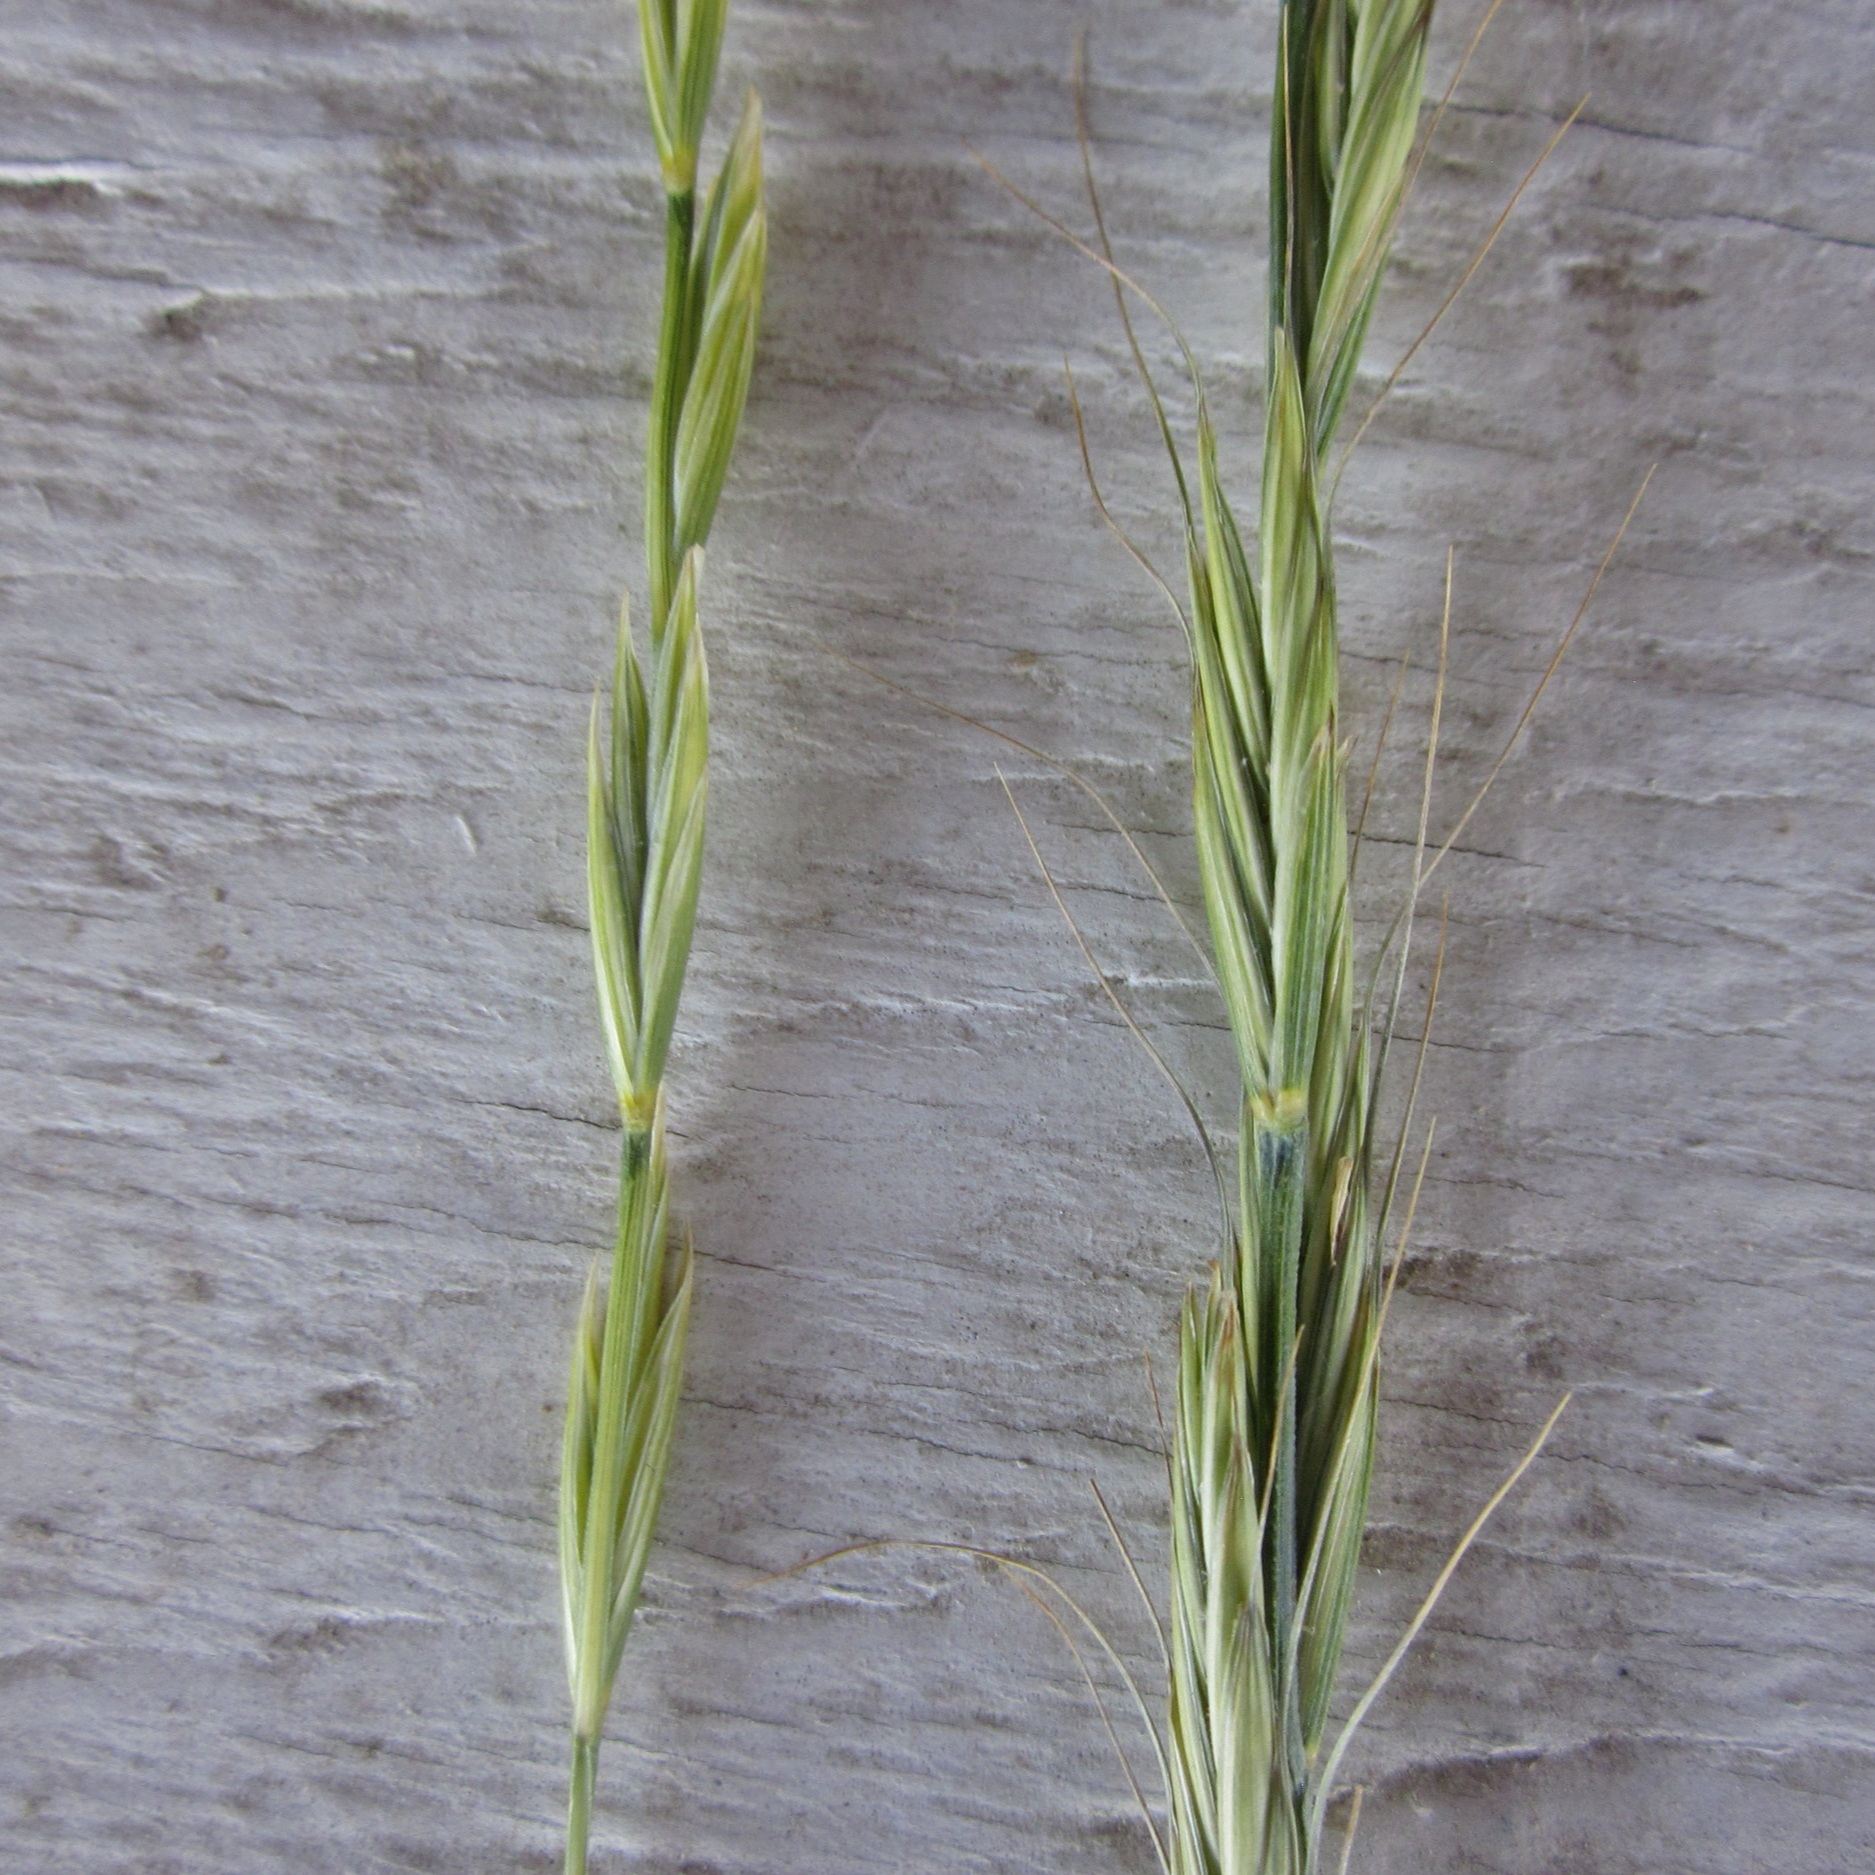 Beardless bluebunch wheatgrass (left) without the long awn typical of standard Bluebunch wheatgrass (right).